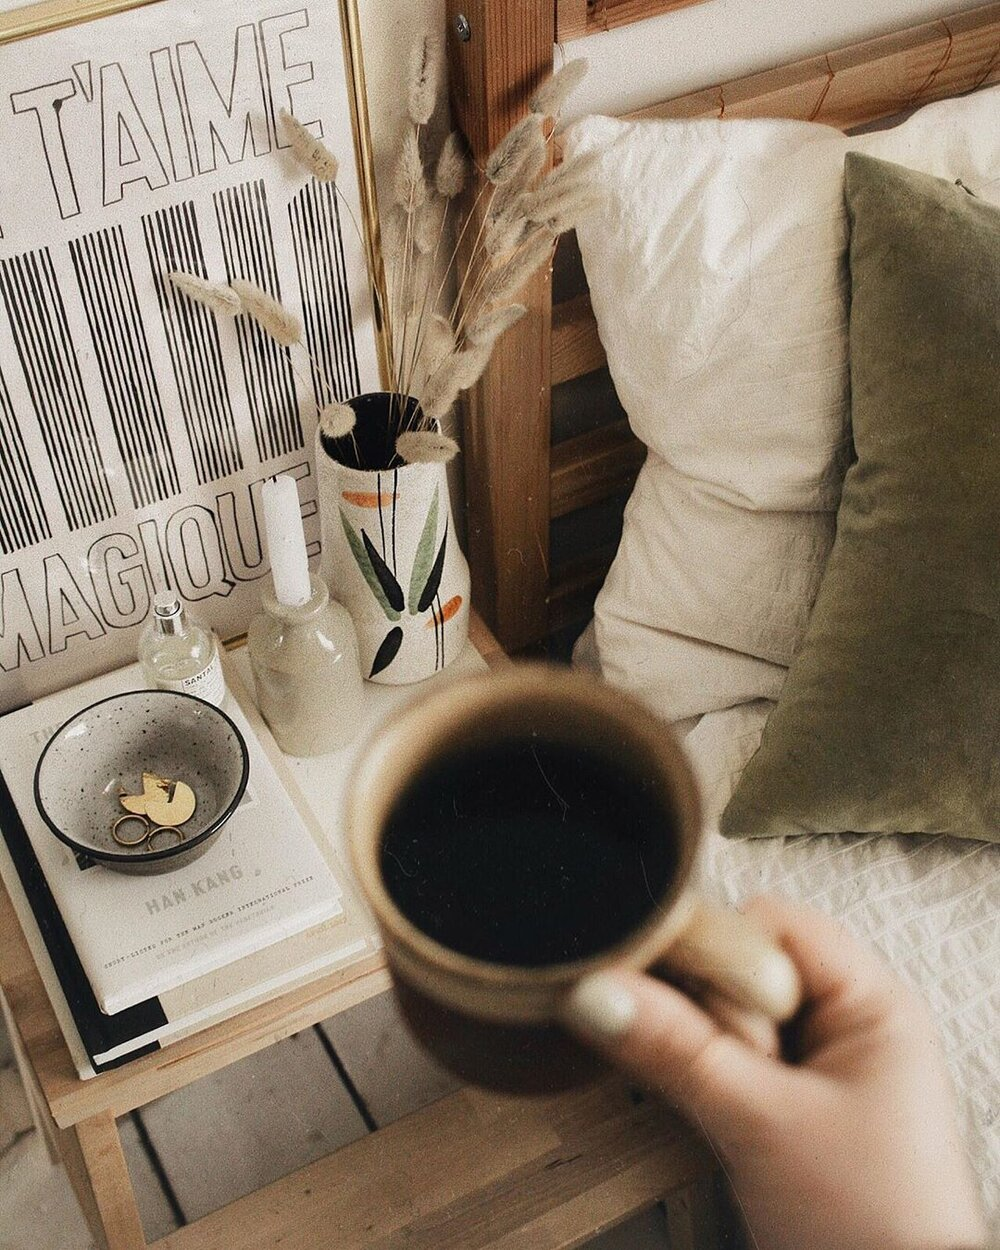 Beginning the day with coffee. Photo by Polly Florence.